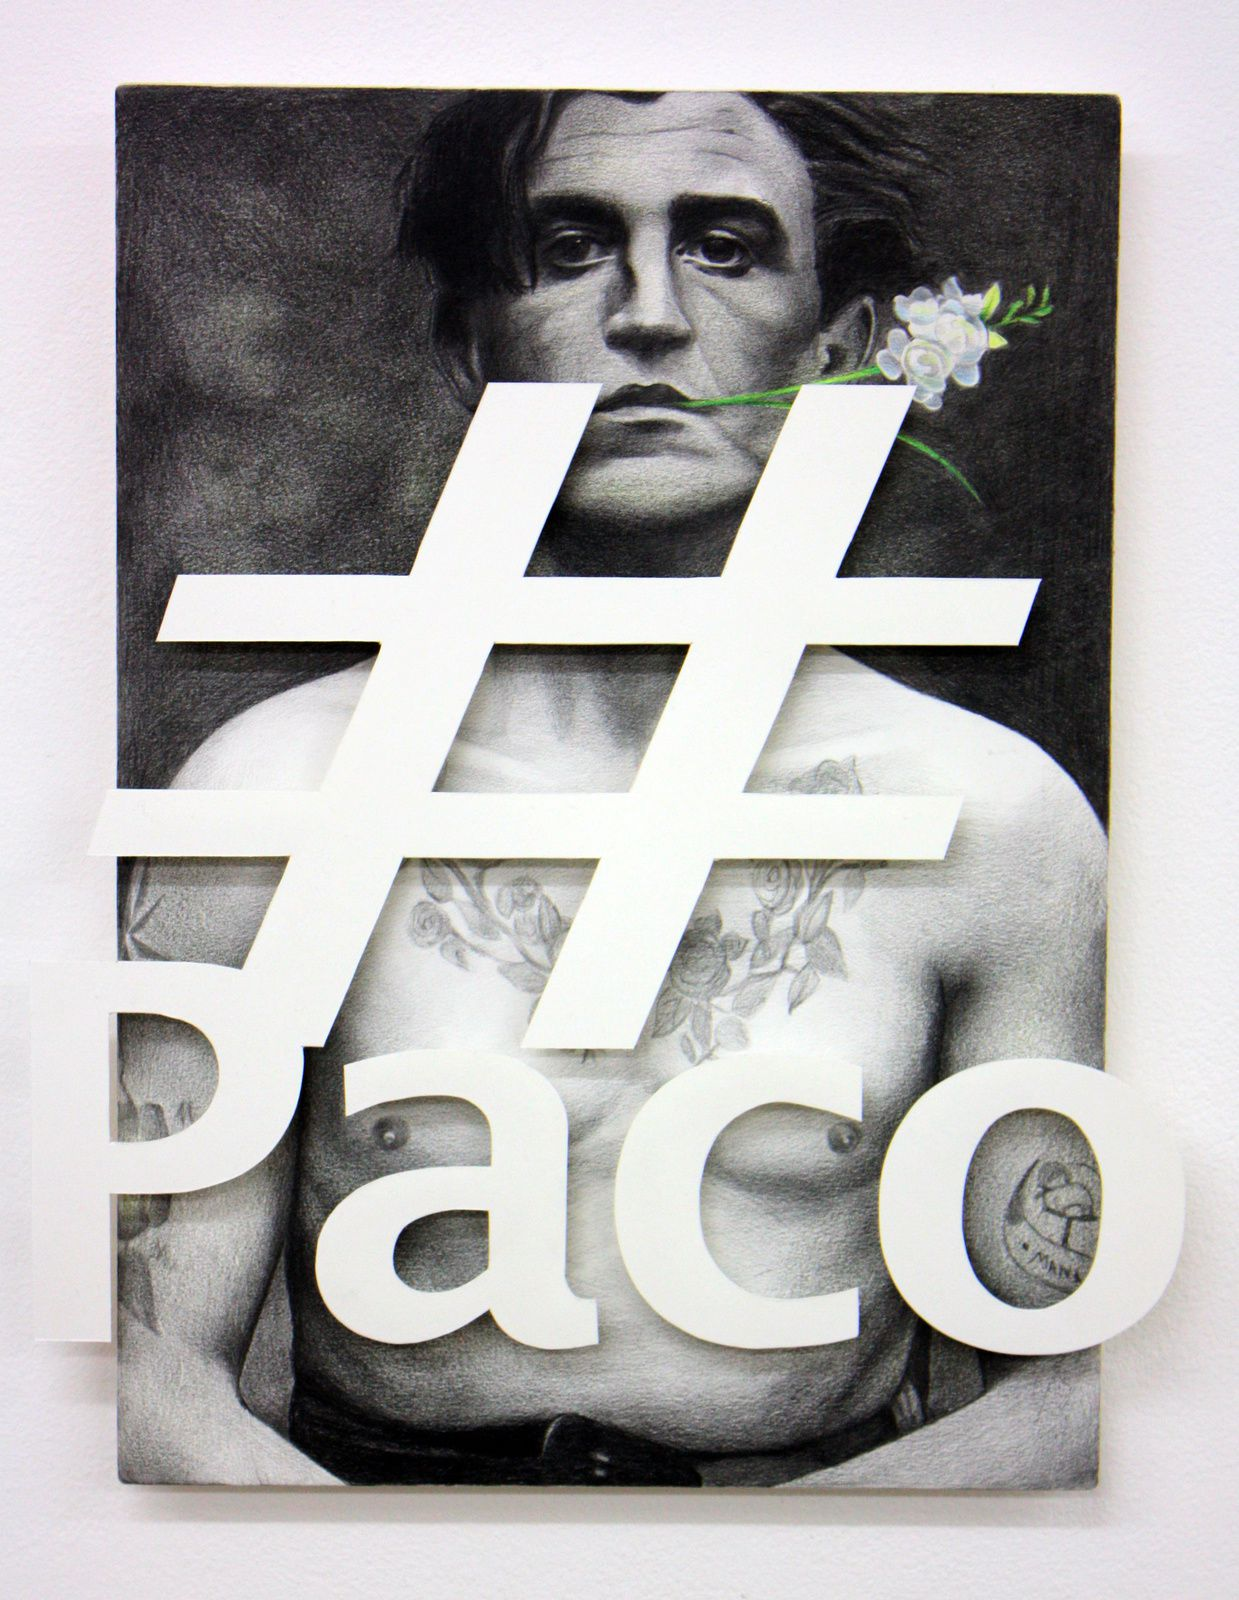 Paco, 2014 (Courtesy de l'artiste, Backslash Gallery (Paris)